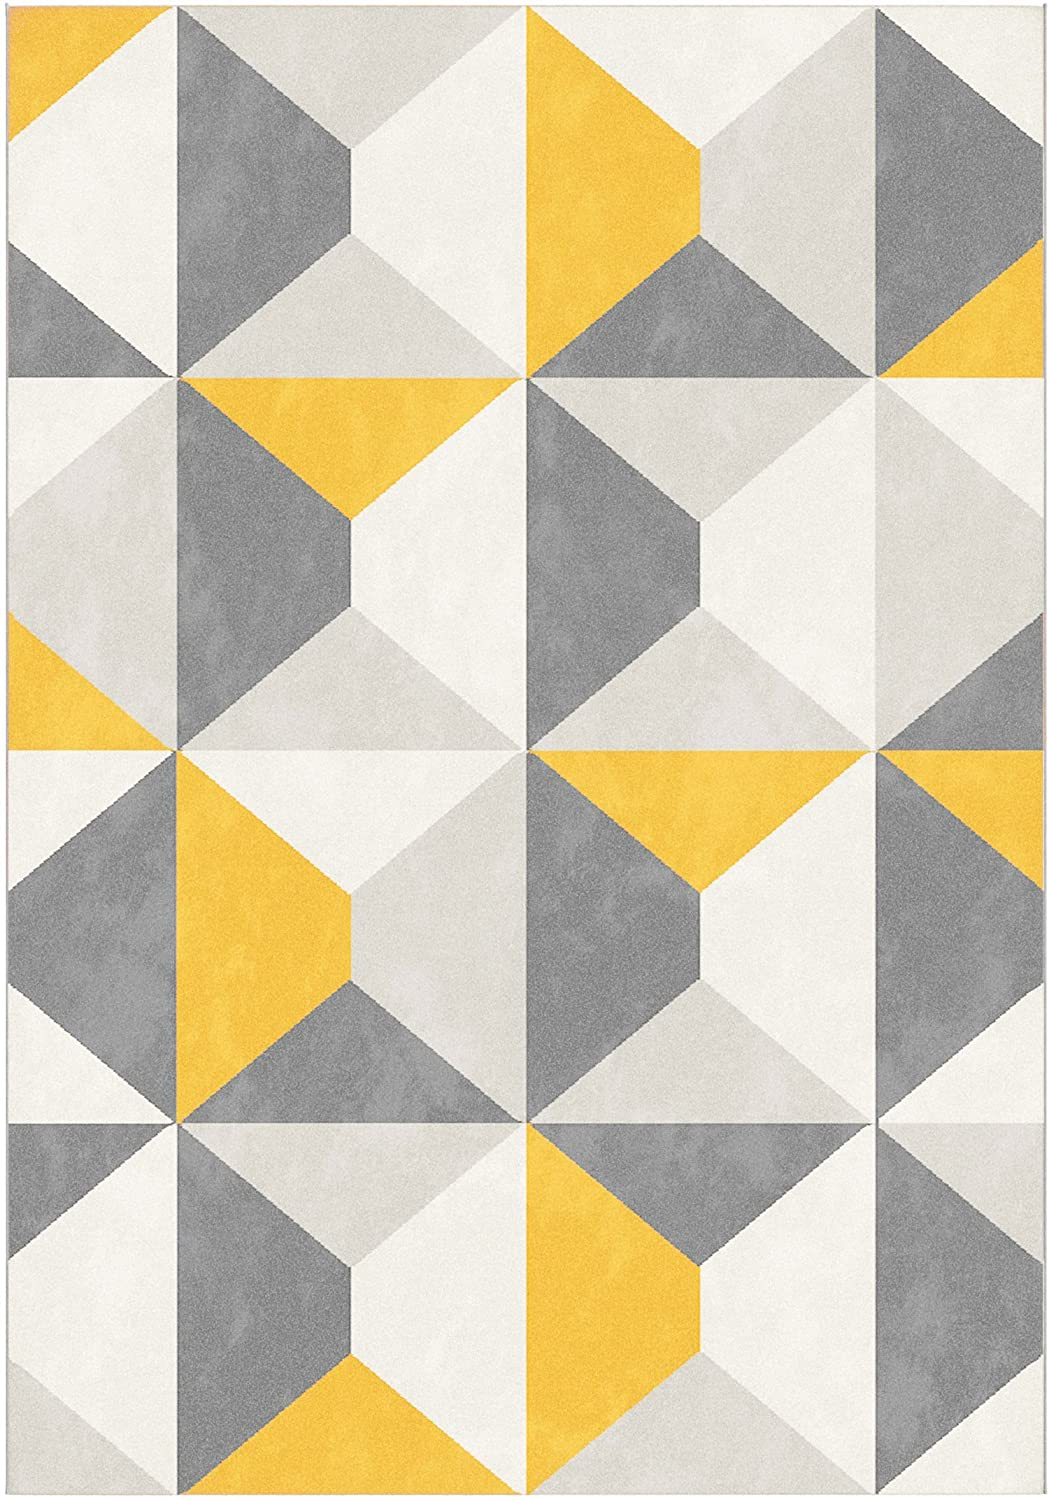 Modern Style Rugs Home Accessories in Geometric Grey, Cream, Mustard, Yellow - Diamond Pattern in Soft Touch Large Living Room Rug (Grey & Mustard, 120x170cm)